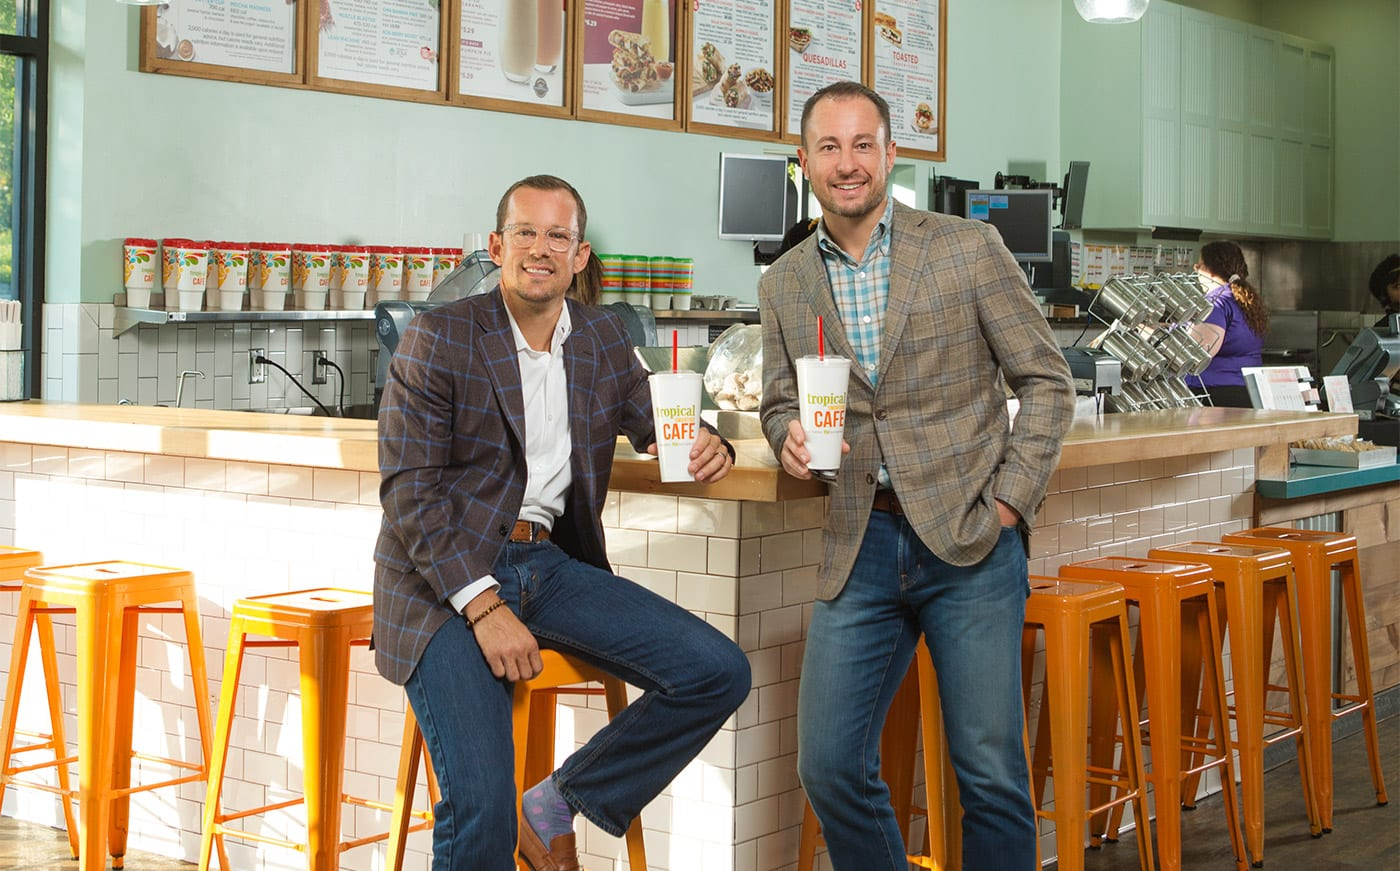 Multi-unit franchise owners Glen Johnson and Nick Crouch